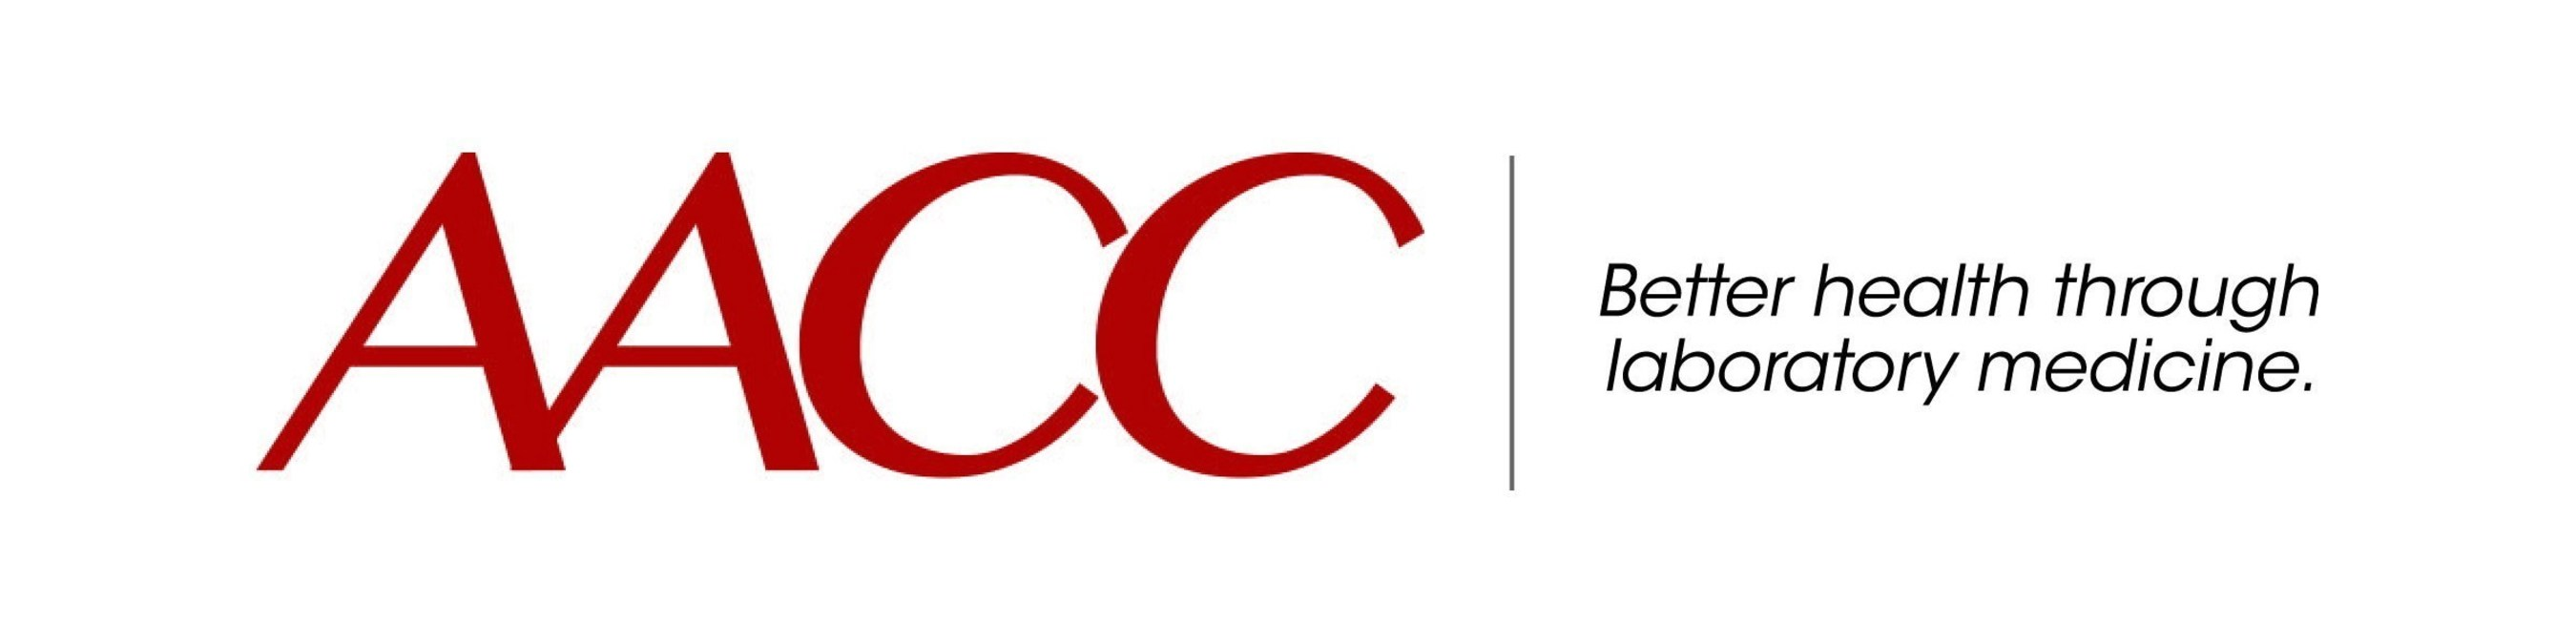 Dedicated to achieving better health through laboratory medicine, AACC brings together more than 50,000 clinical laboratory professionals, physicians, research scientists, and business leaders from around the world focused on clinical chemistry, molecular diagnostics, mass spectrometry, translational medicine, lab management, and other areas of breaking laboratory science. Since 1948, AACC has worked to advance the common interests of the field, providing programs that advance scientific collaboration, knowledge, expertise, and innovation. For more information, visit www.aacc.org.